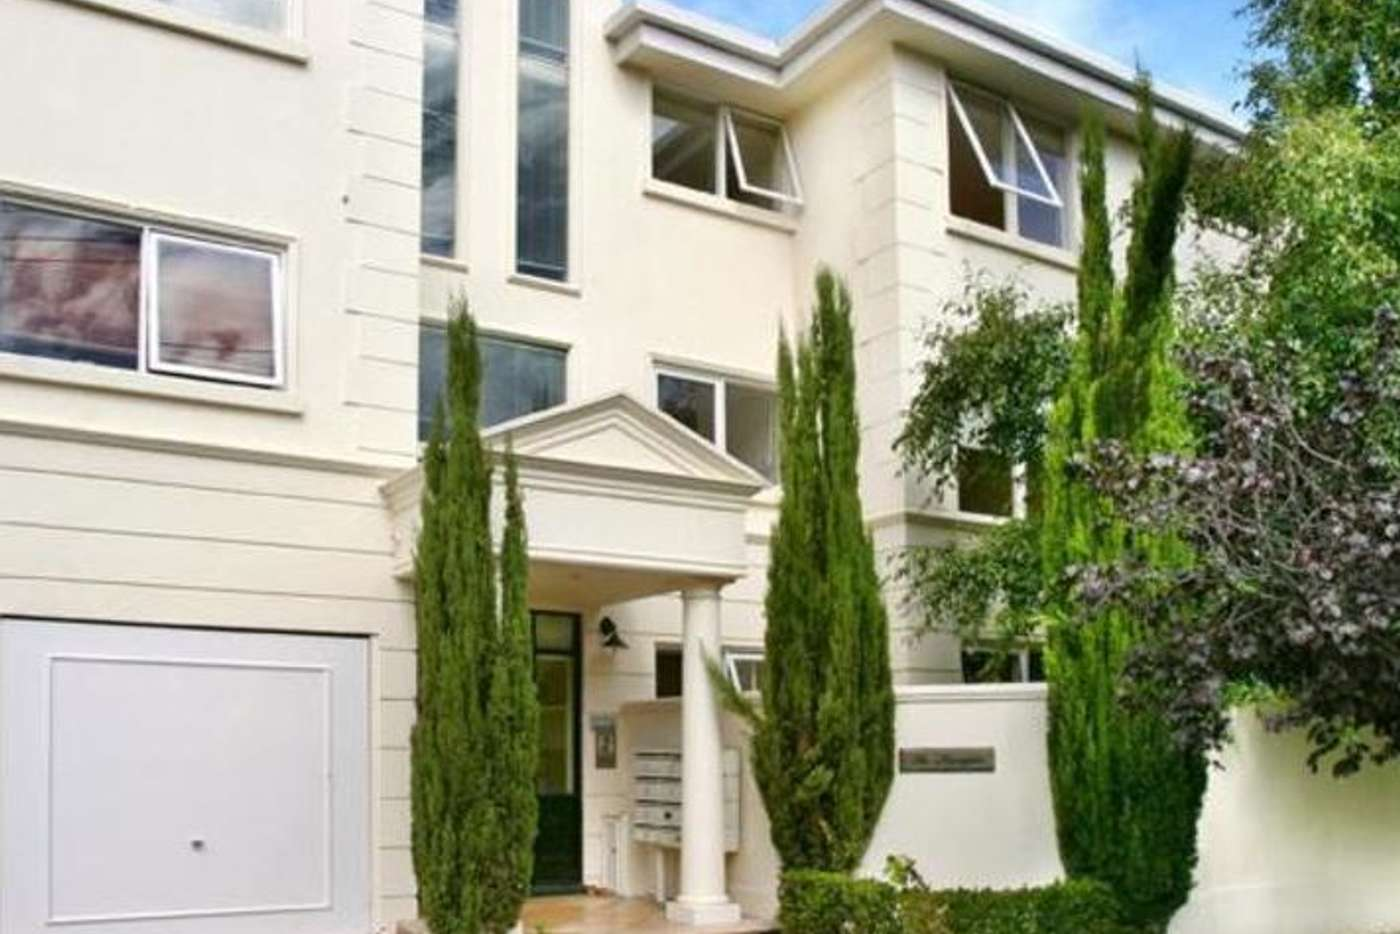 Main view of Homely apartment listing, 6/2A Lexton Grove, Prahran VIC 3181